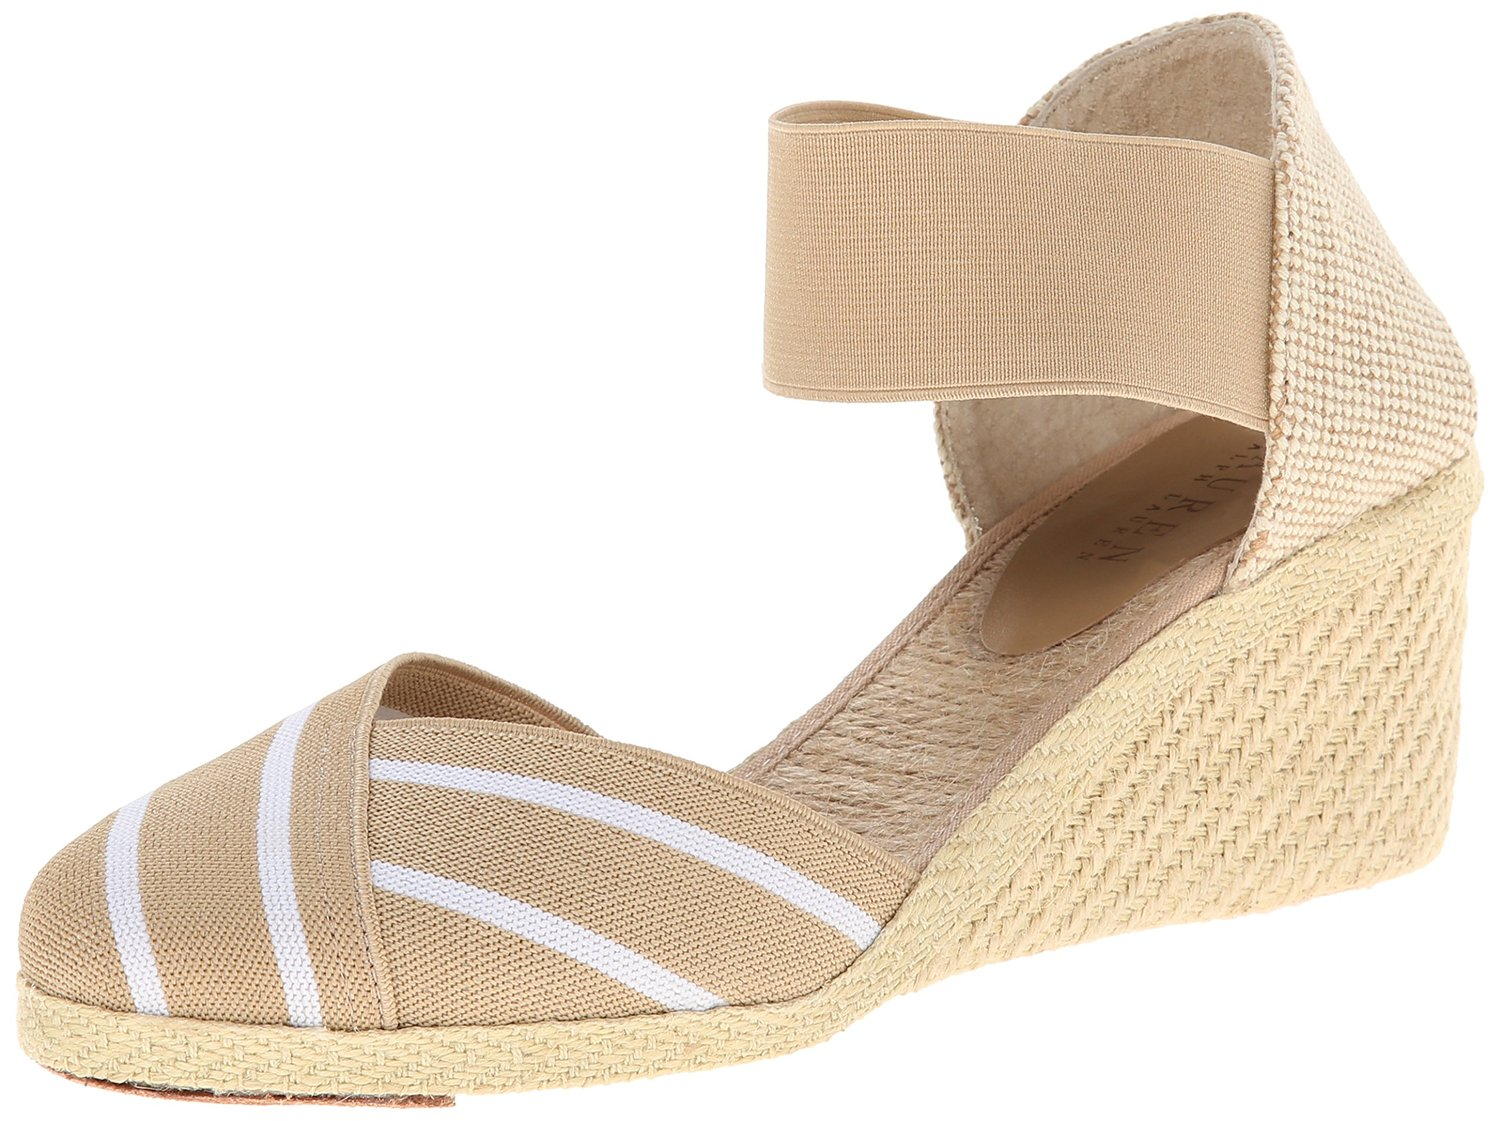 lauren ralph lauren charla espadrille sandal. Black Bedroom Furniture Sets. Home Design Ideas